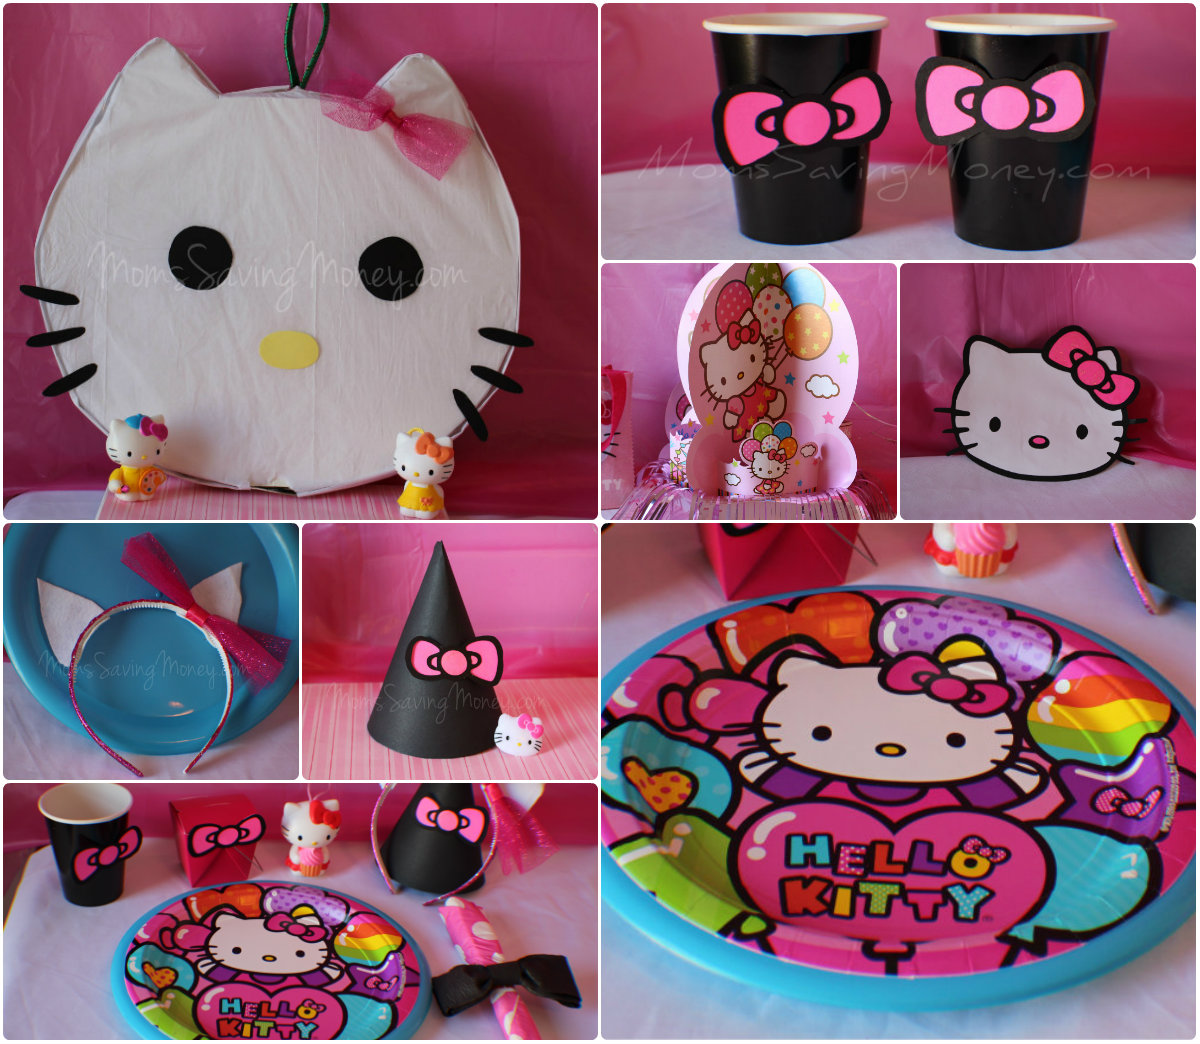 hello kitty party ideas rebecca autry creations. Black Bedroom Furniture Sets. Home Design Ideas